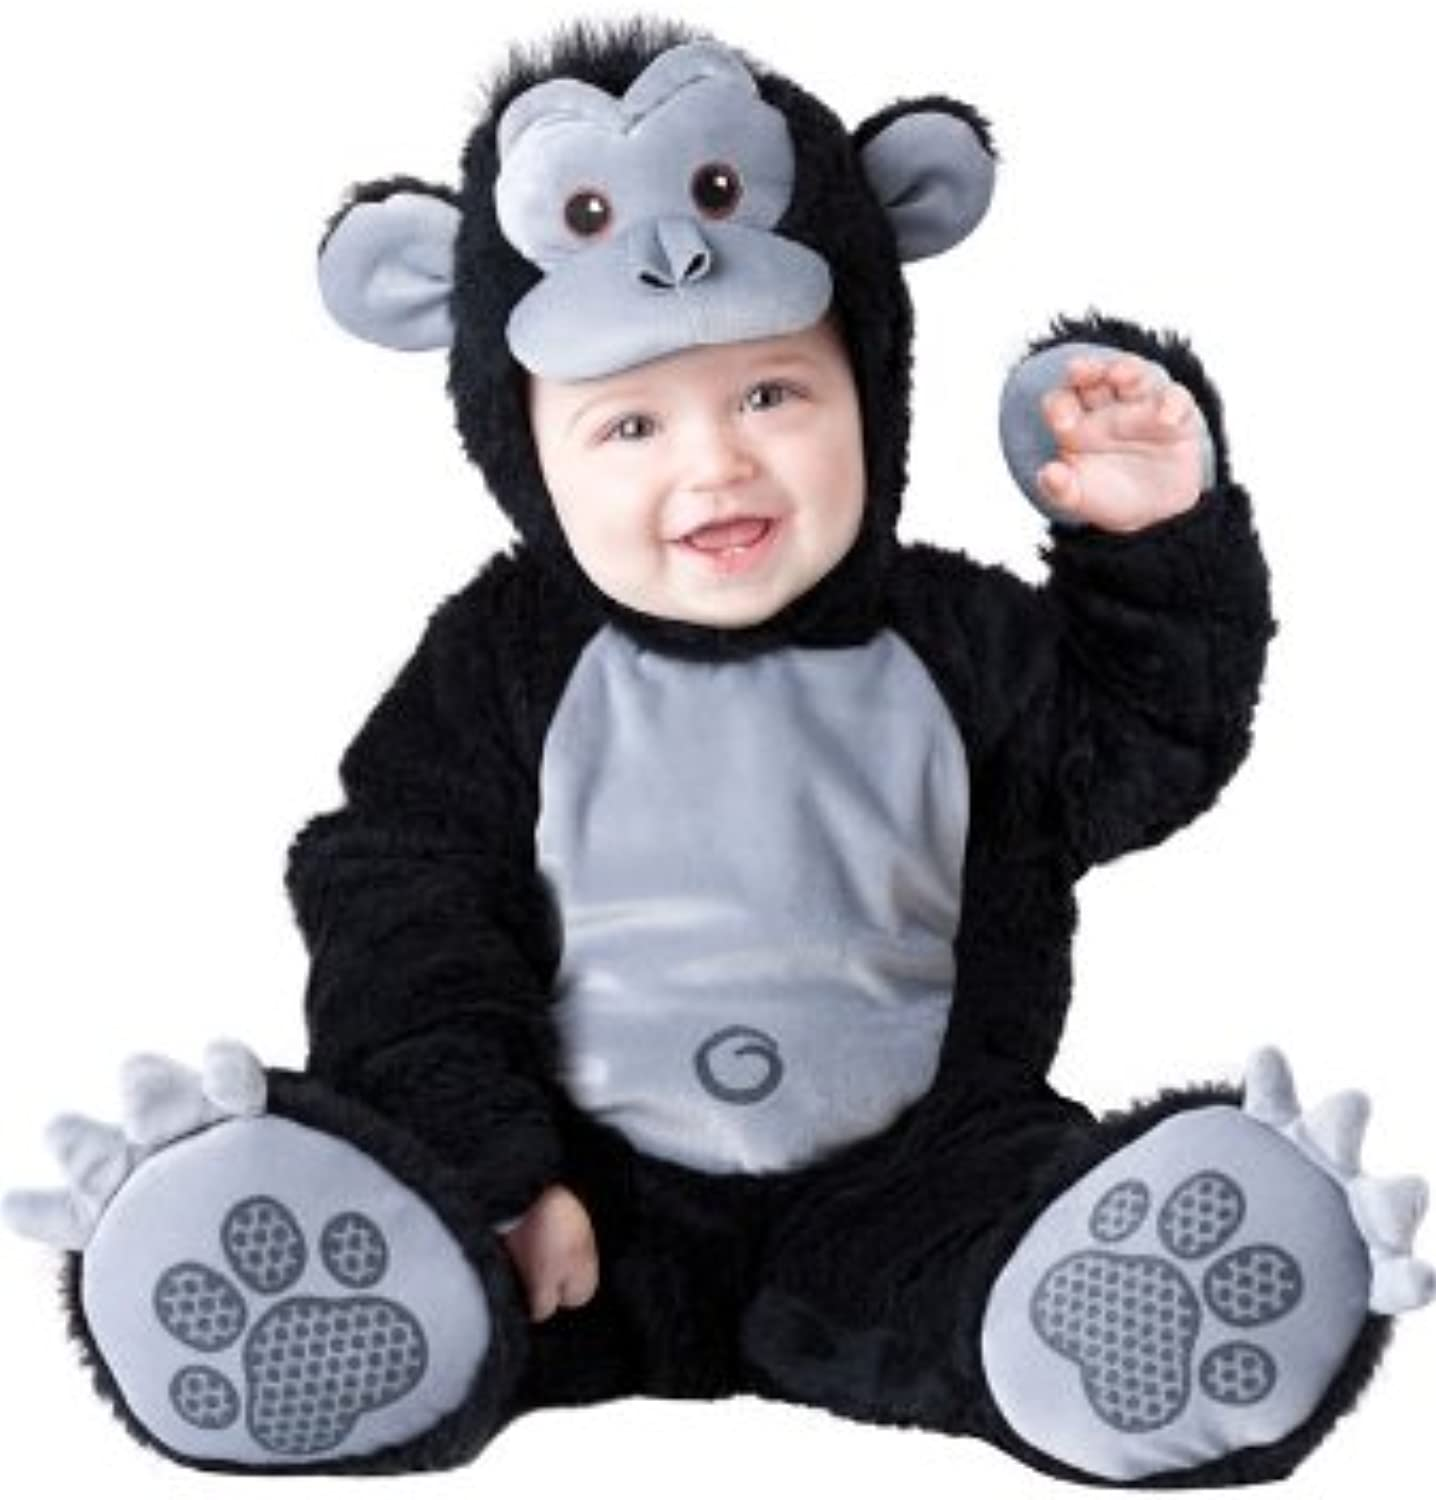 Goofy Gorilla Costume for Toddlers